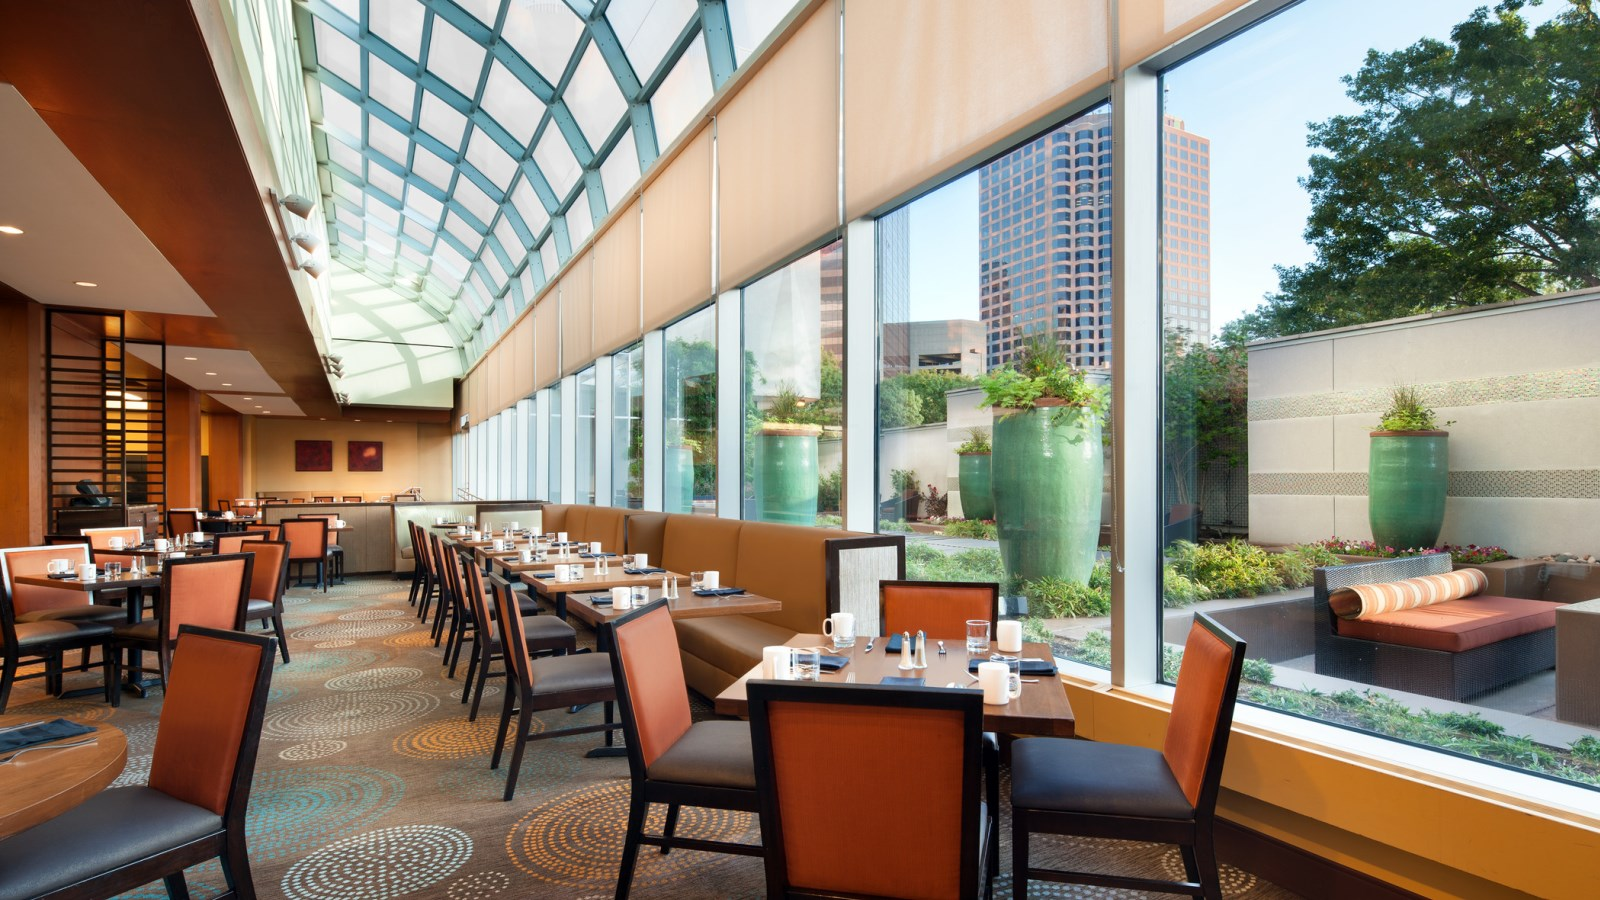 The Kitchen Table Restaurant At Sheraton Dallas Hotel Rolls Out New - The kitchen table menu